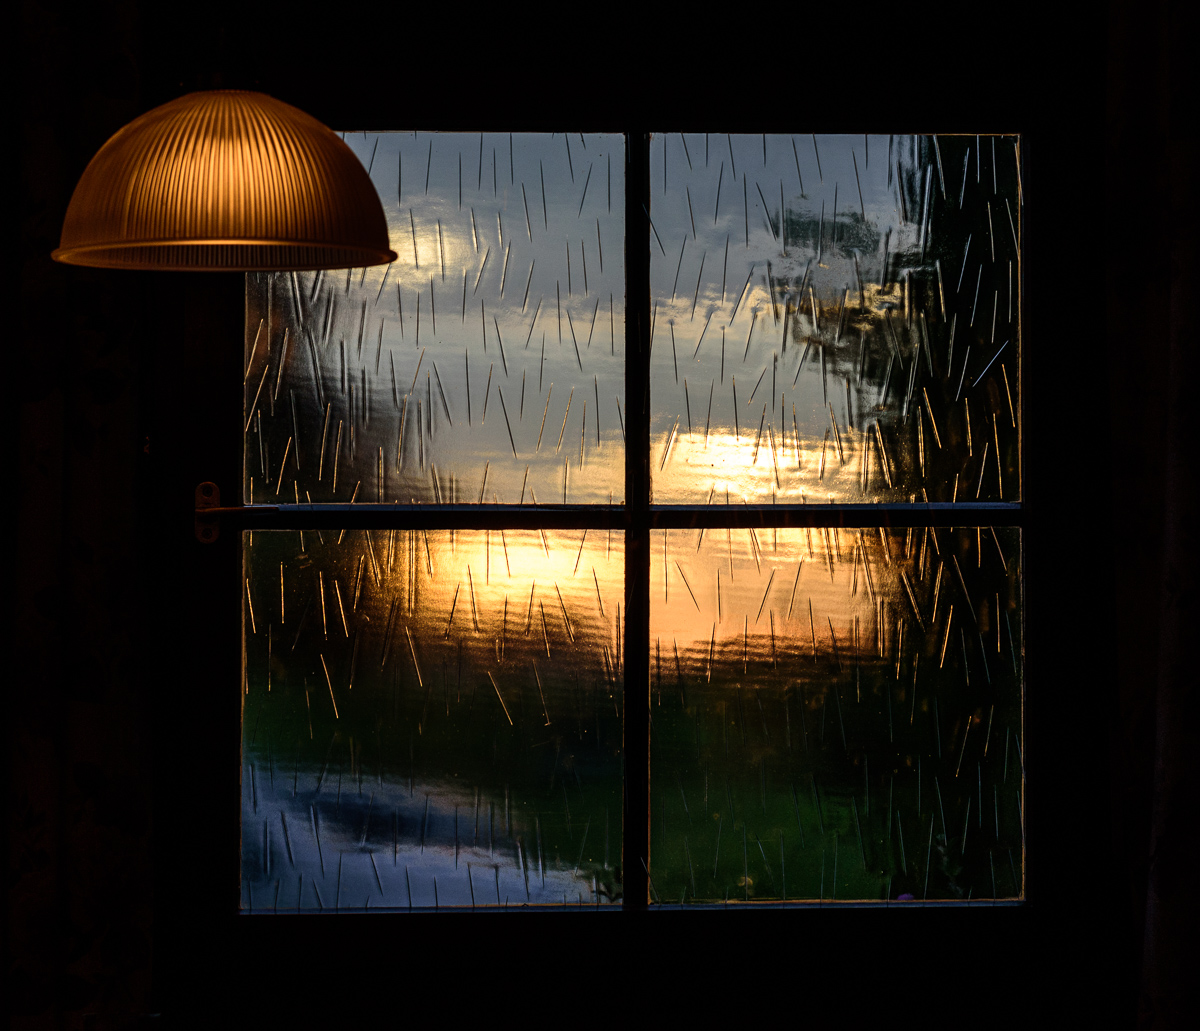 abends am fenster foto bild abendstimmung muster. Black Bedroom Furniture Sets. Home Design Ideas